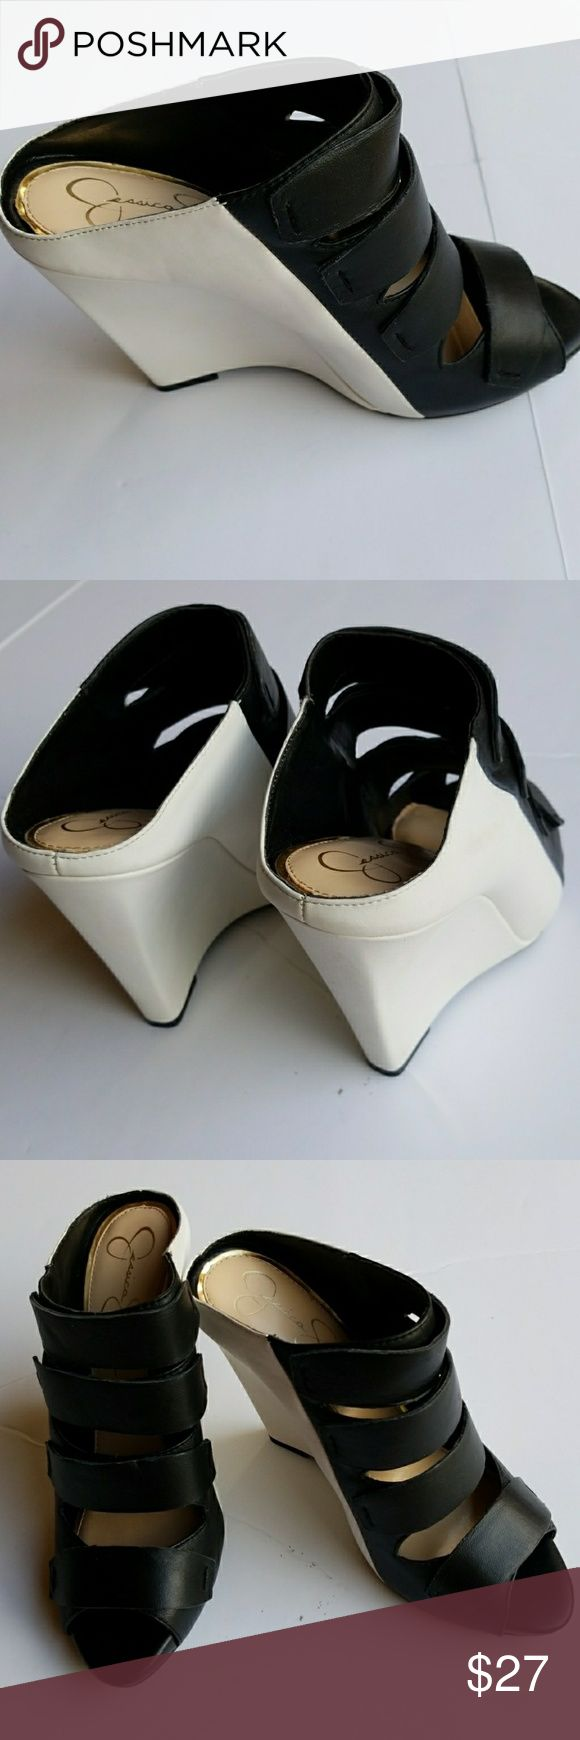 """Jessica Simpson  black/ white wedge shoes size 8 Chic black and white  shoes.  New store display . Heel 4.5"""" Leather/man made upper.   Add my closet to your favorite for new arrivals. I add new items to my closet every week.  ❌No trading. ❌ No lowballing ✔Offers through offer button only.  Reasonable offers please  Jessica Simpson Shoes Wedges"""